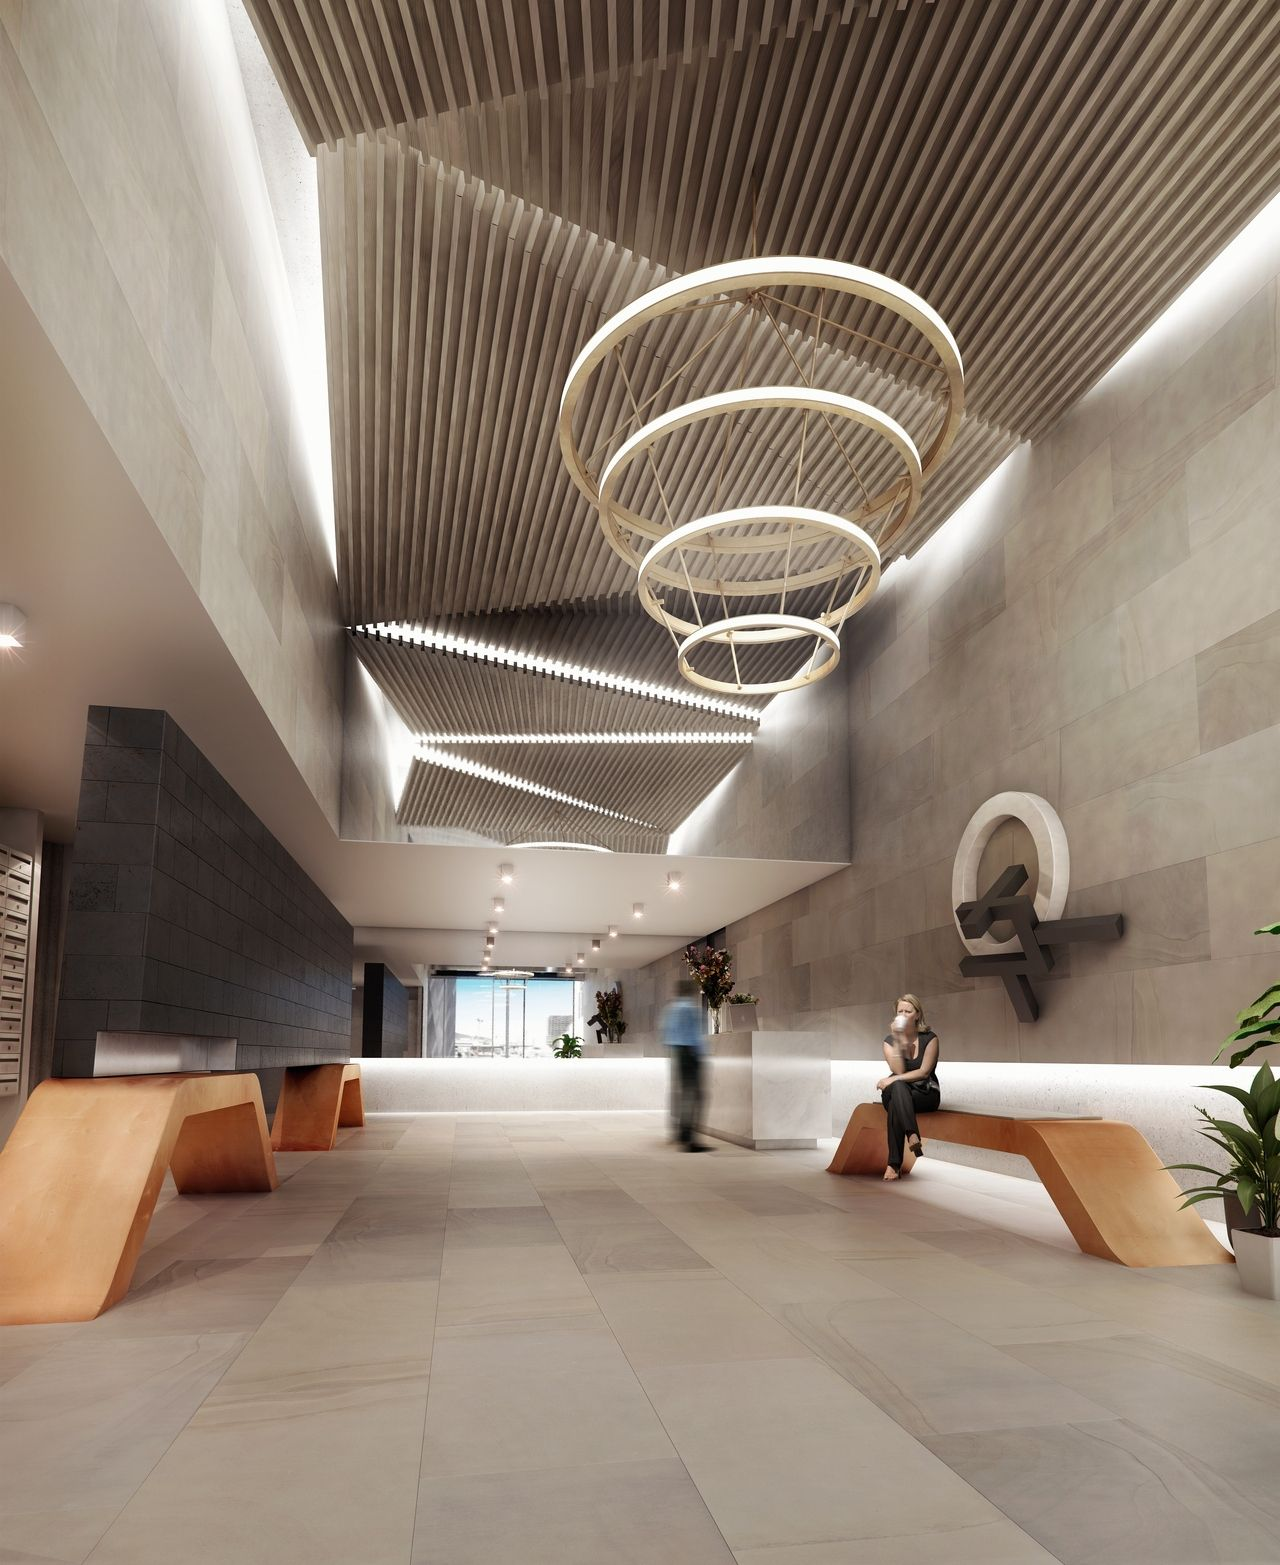 Interior Lighting Options Interior Lighting Options: How To Decorate A Lobby?